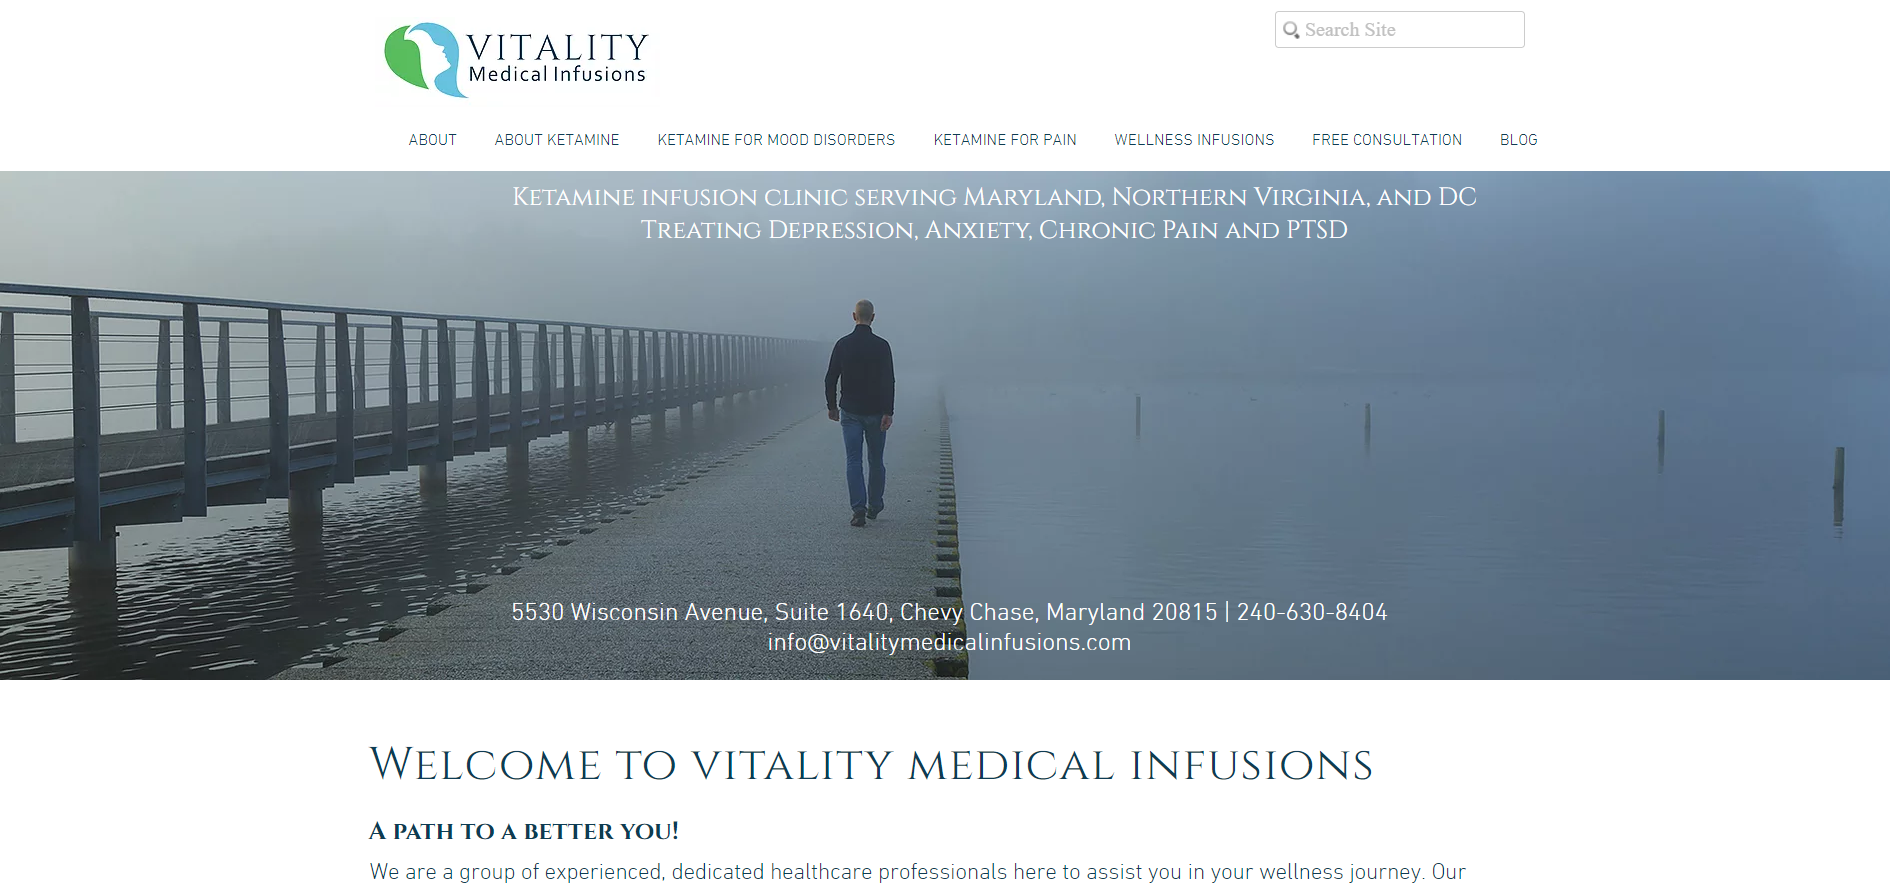 Vitality Medical Infusions